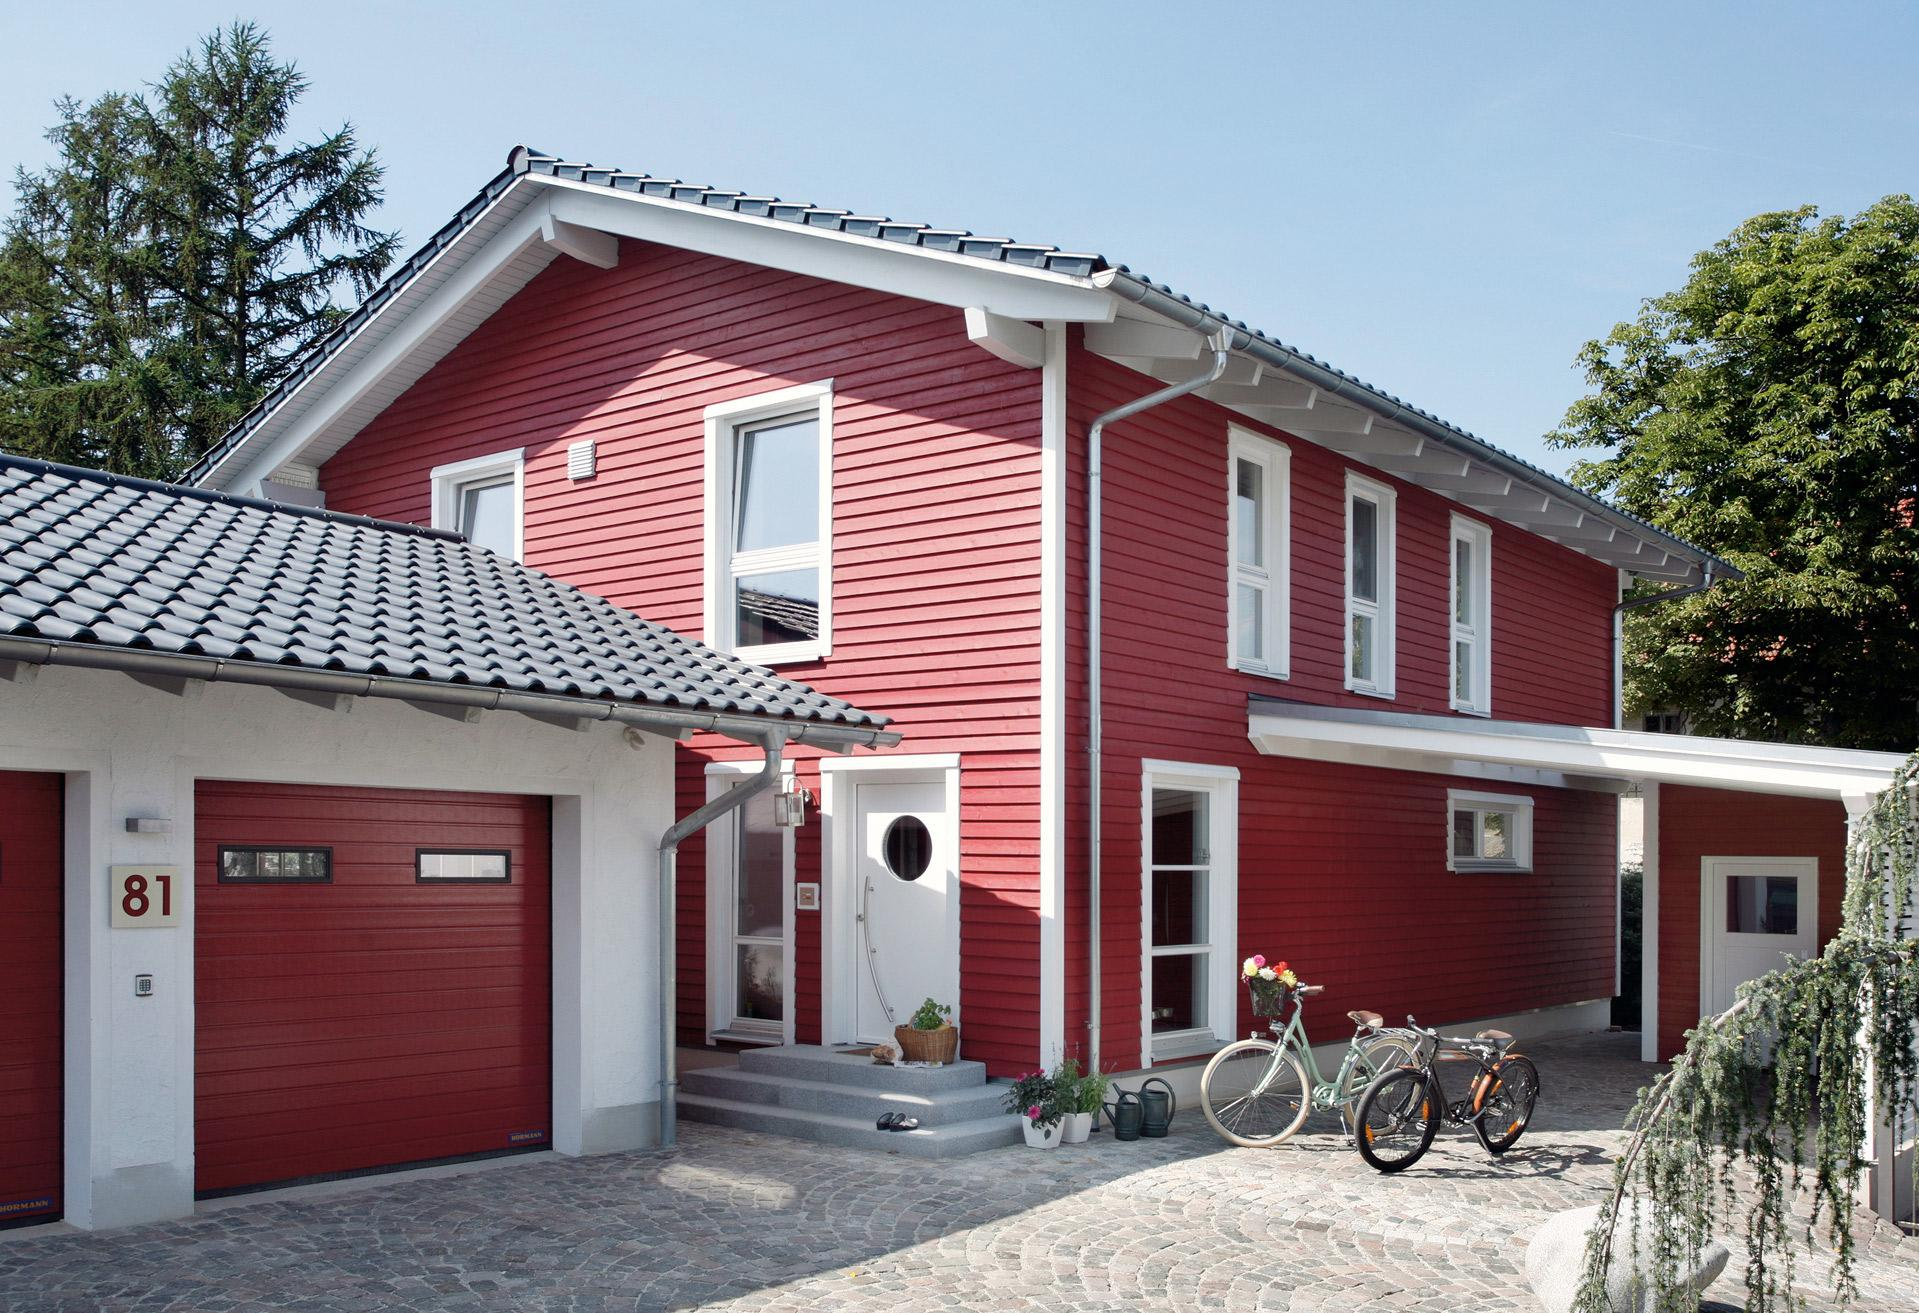 Prefabricated house with red wooden facade and double garage